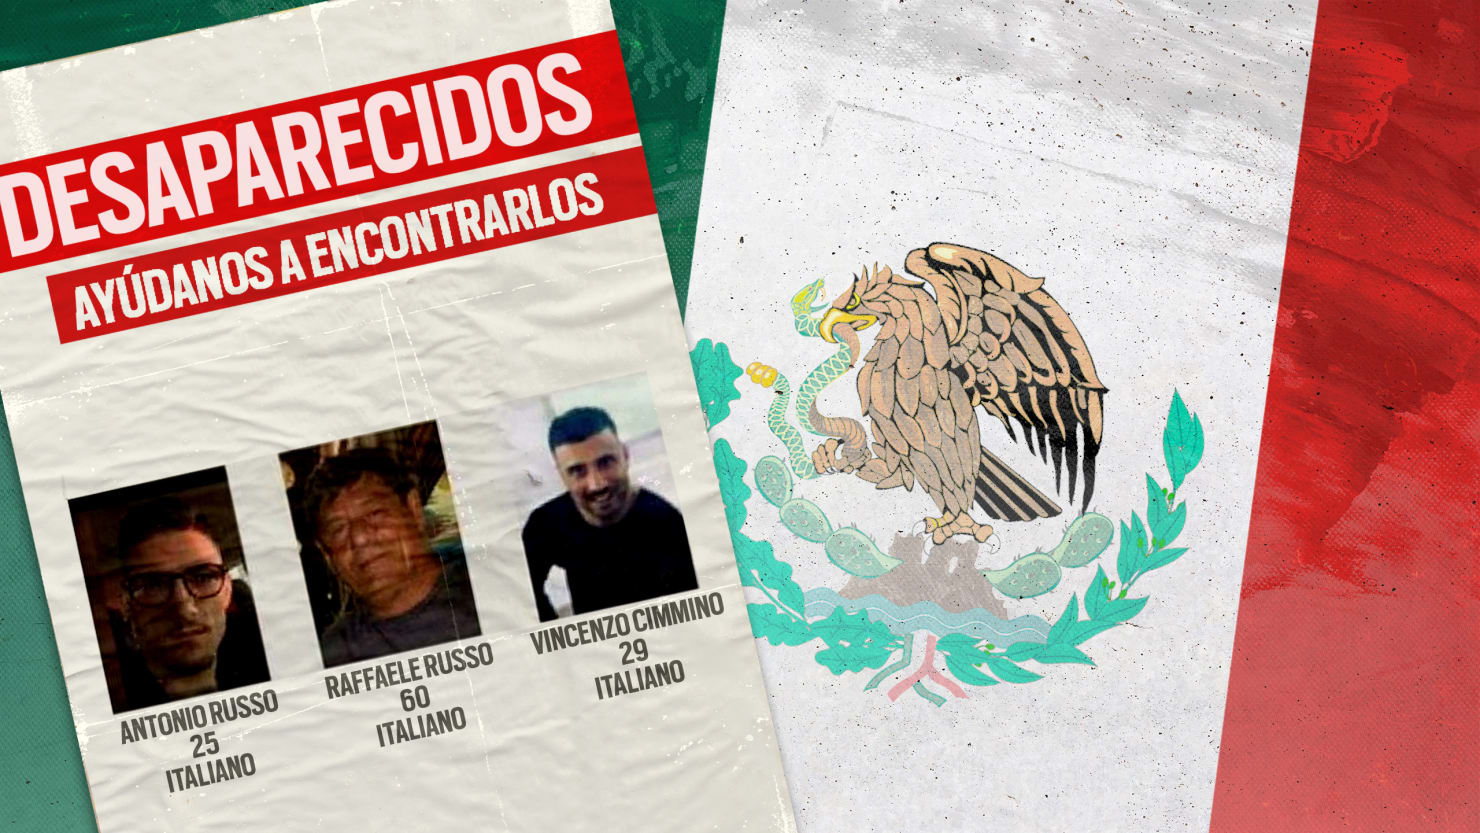 Three Italian Men Went Missing in Mexico. What Were They Doing There?